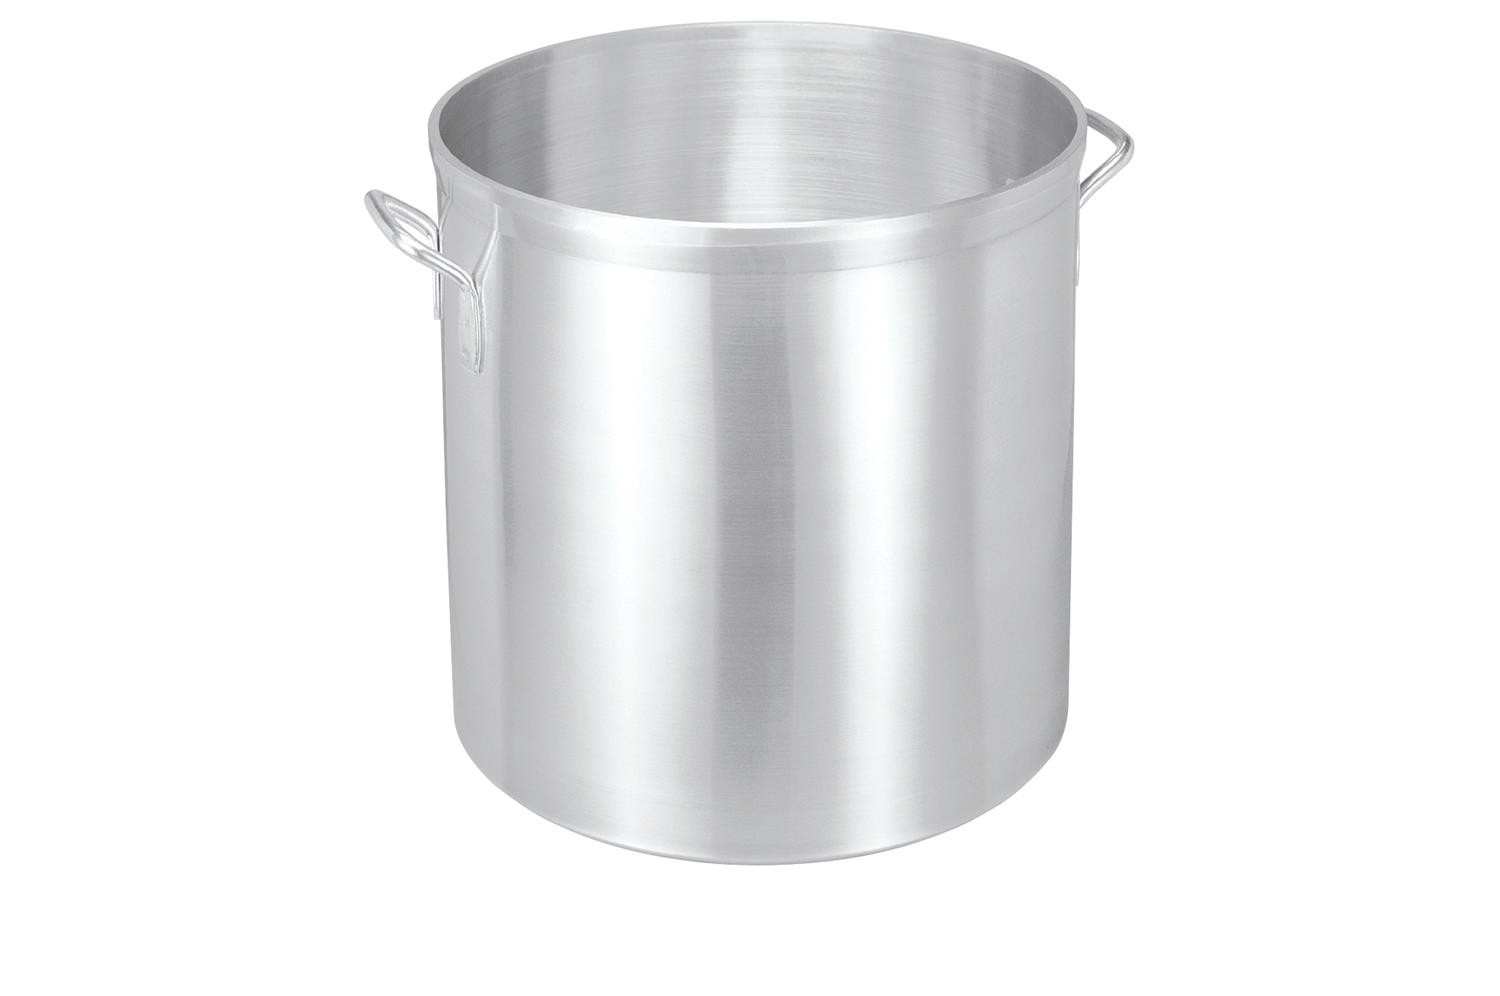 Vollrath 68616 Wear-Ever Classic Select Heavy-Duty Aluminum Stock Pot 15 Qt.